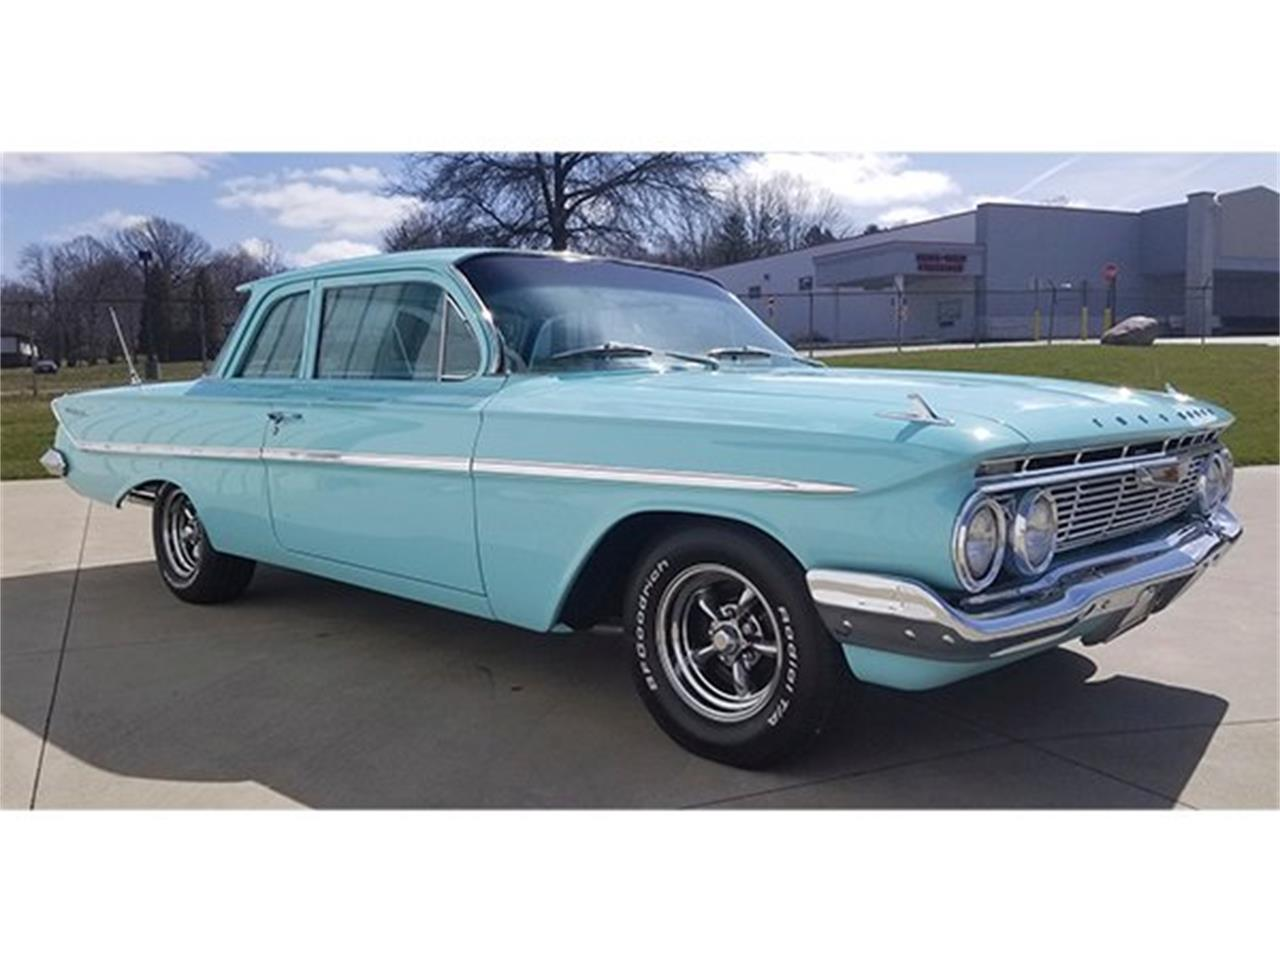 Large Picture of '61 Chevrolet Bel Air located in Greensboro North Carolina Auction Vehicle Offered by GAA Classic Cars Auctions - Q8XB